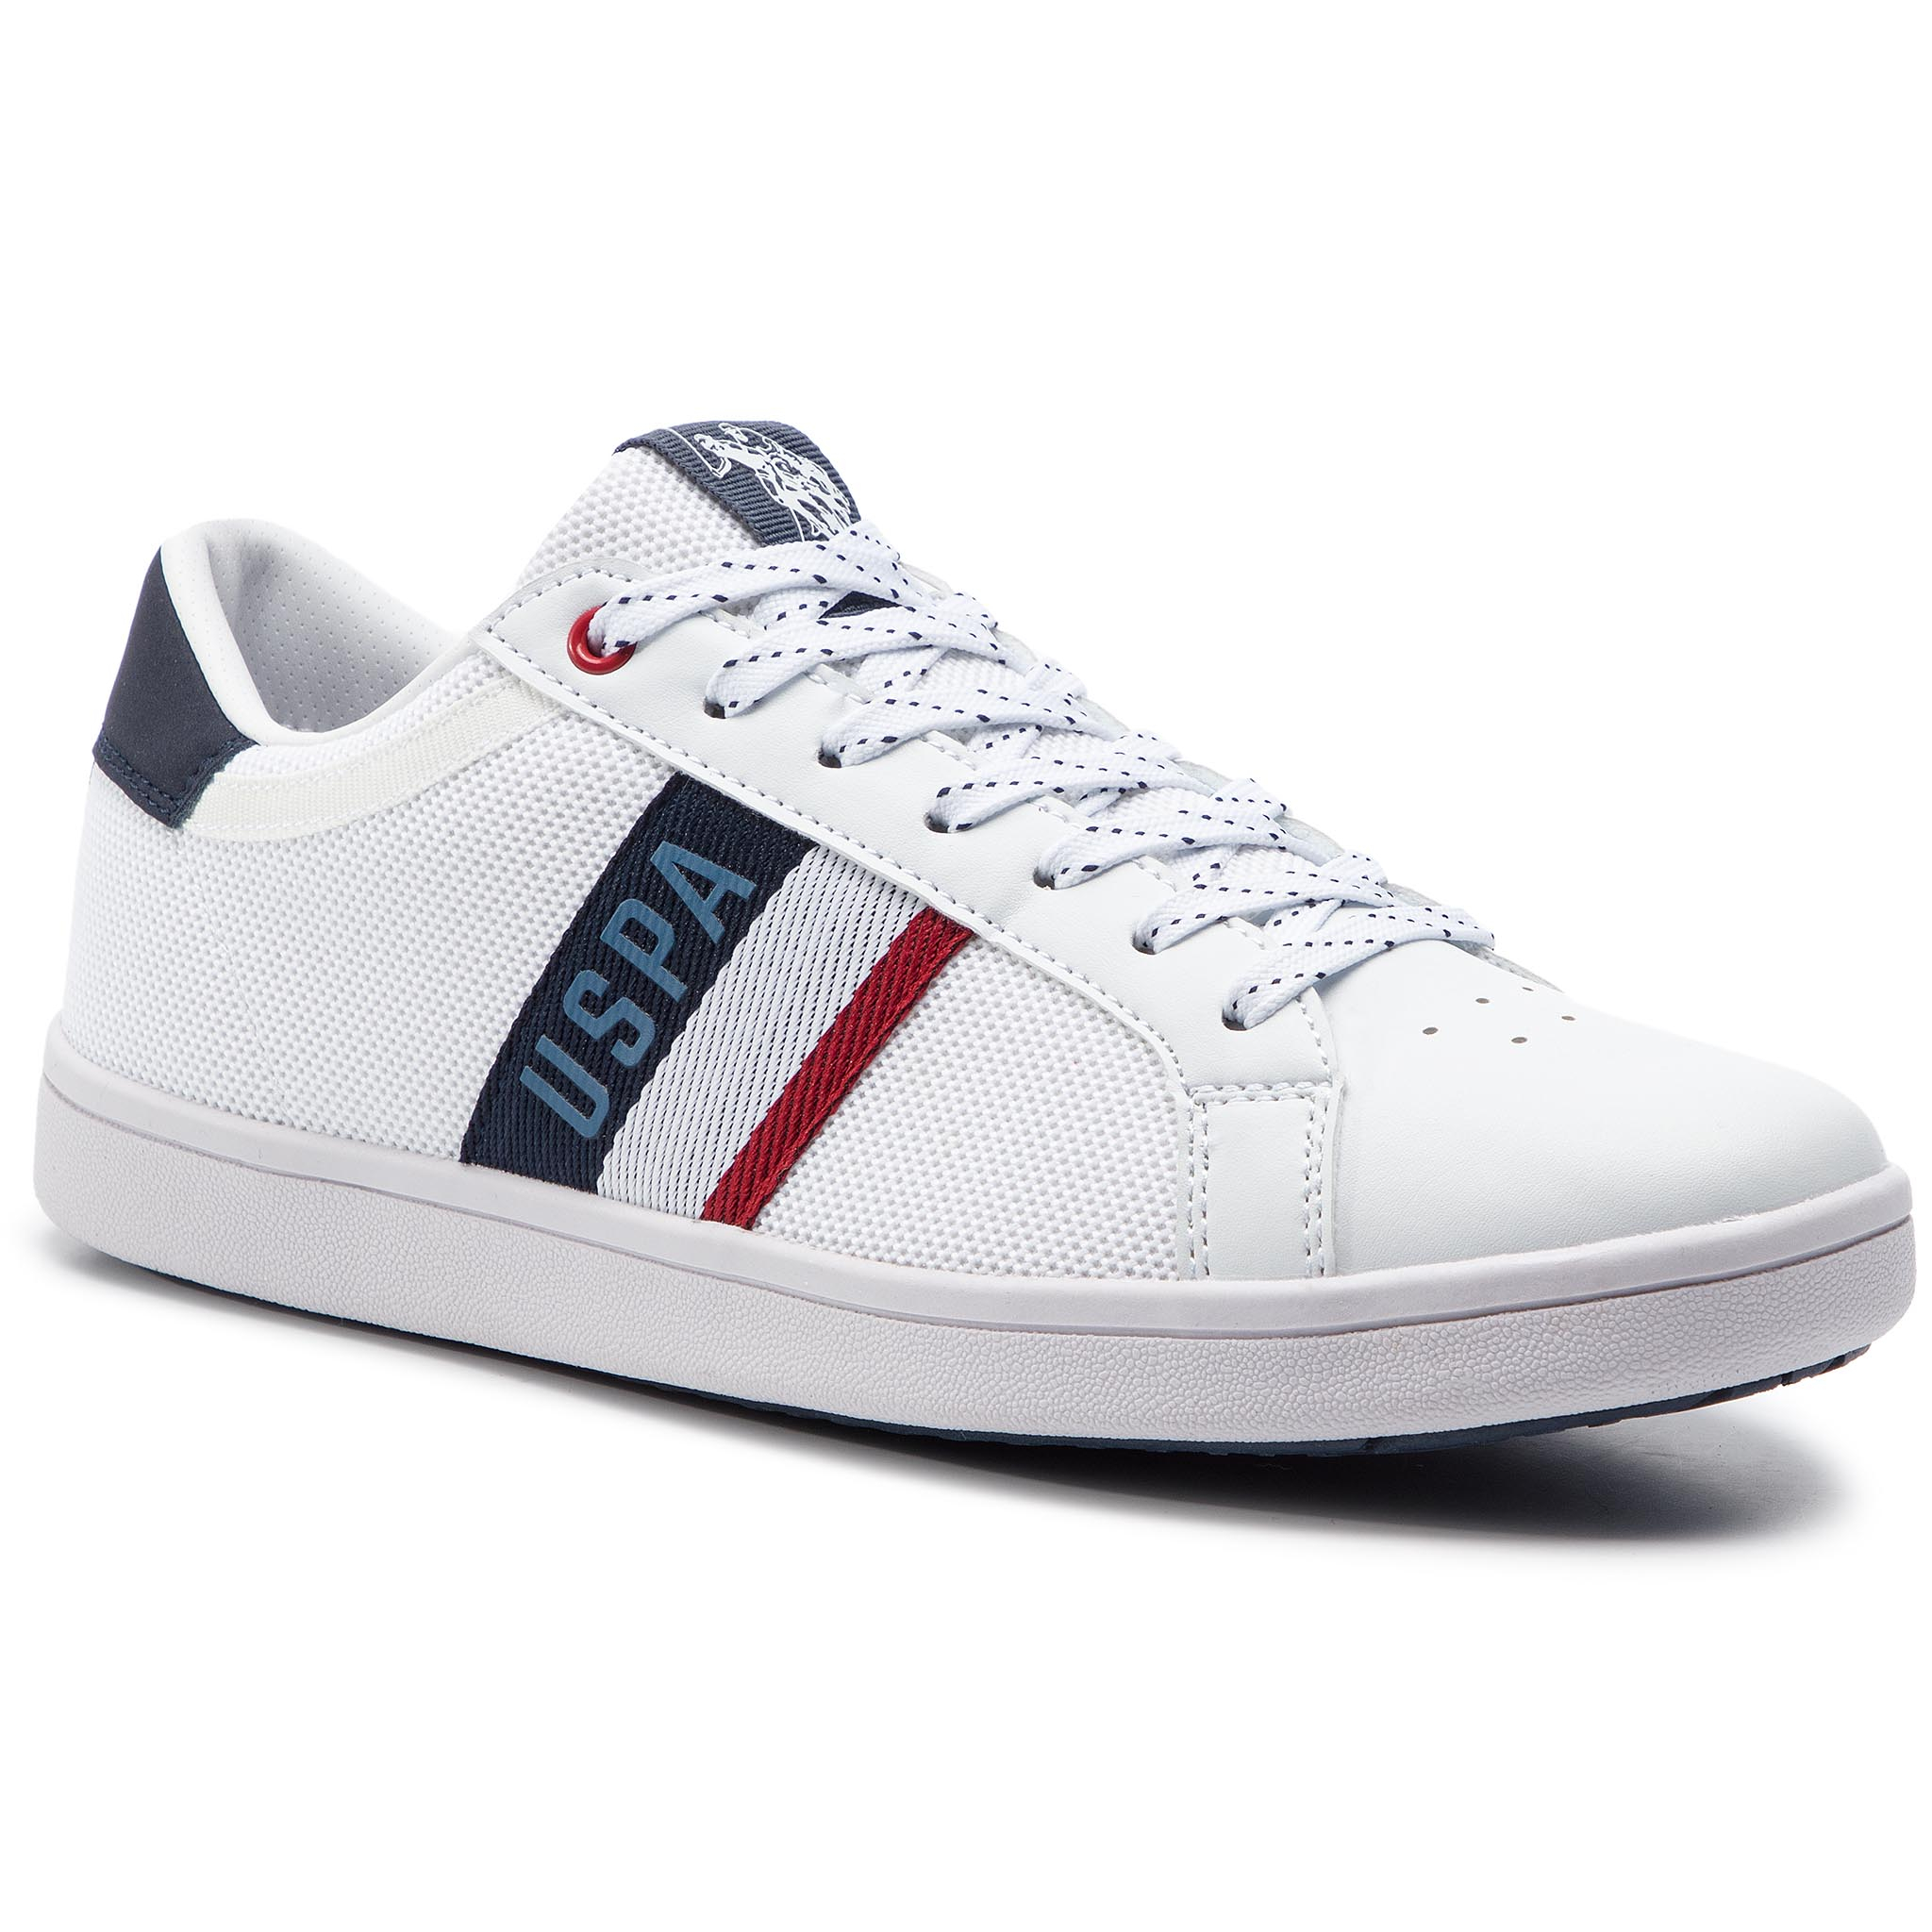 Sneakers U.S. POLO ASSN. - Icon Mesh JARED4052S9/MY1 Whi/Dkbl